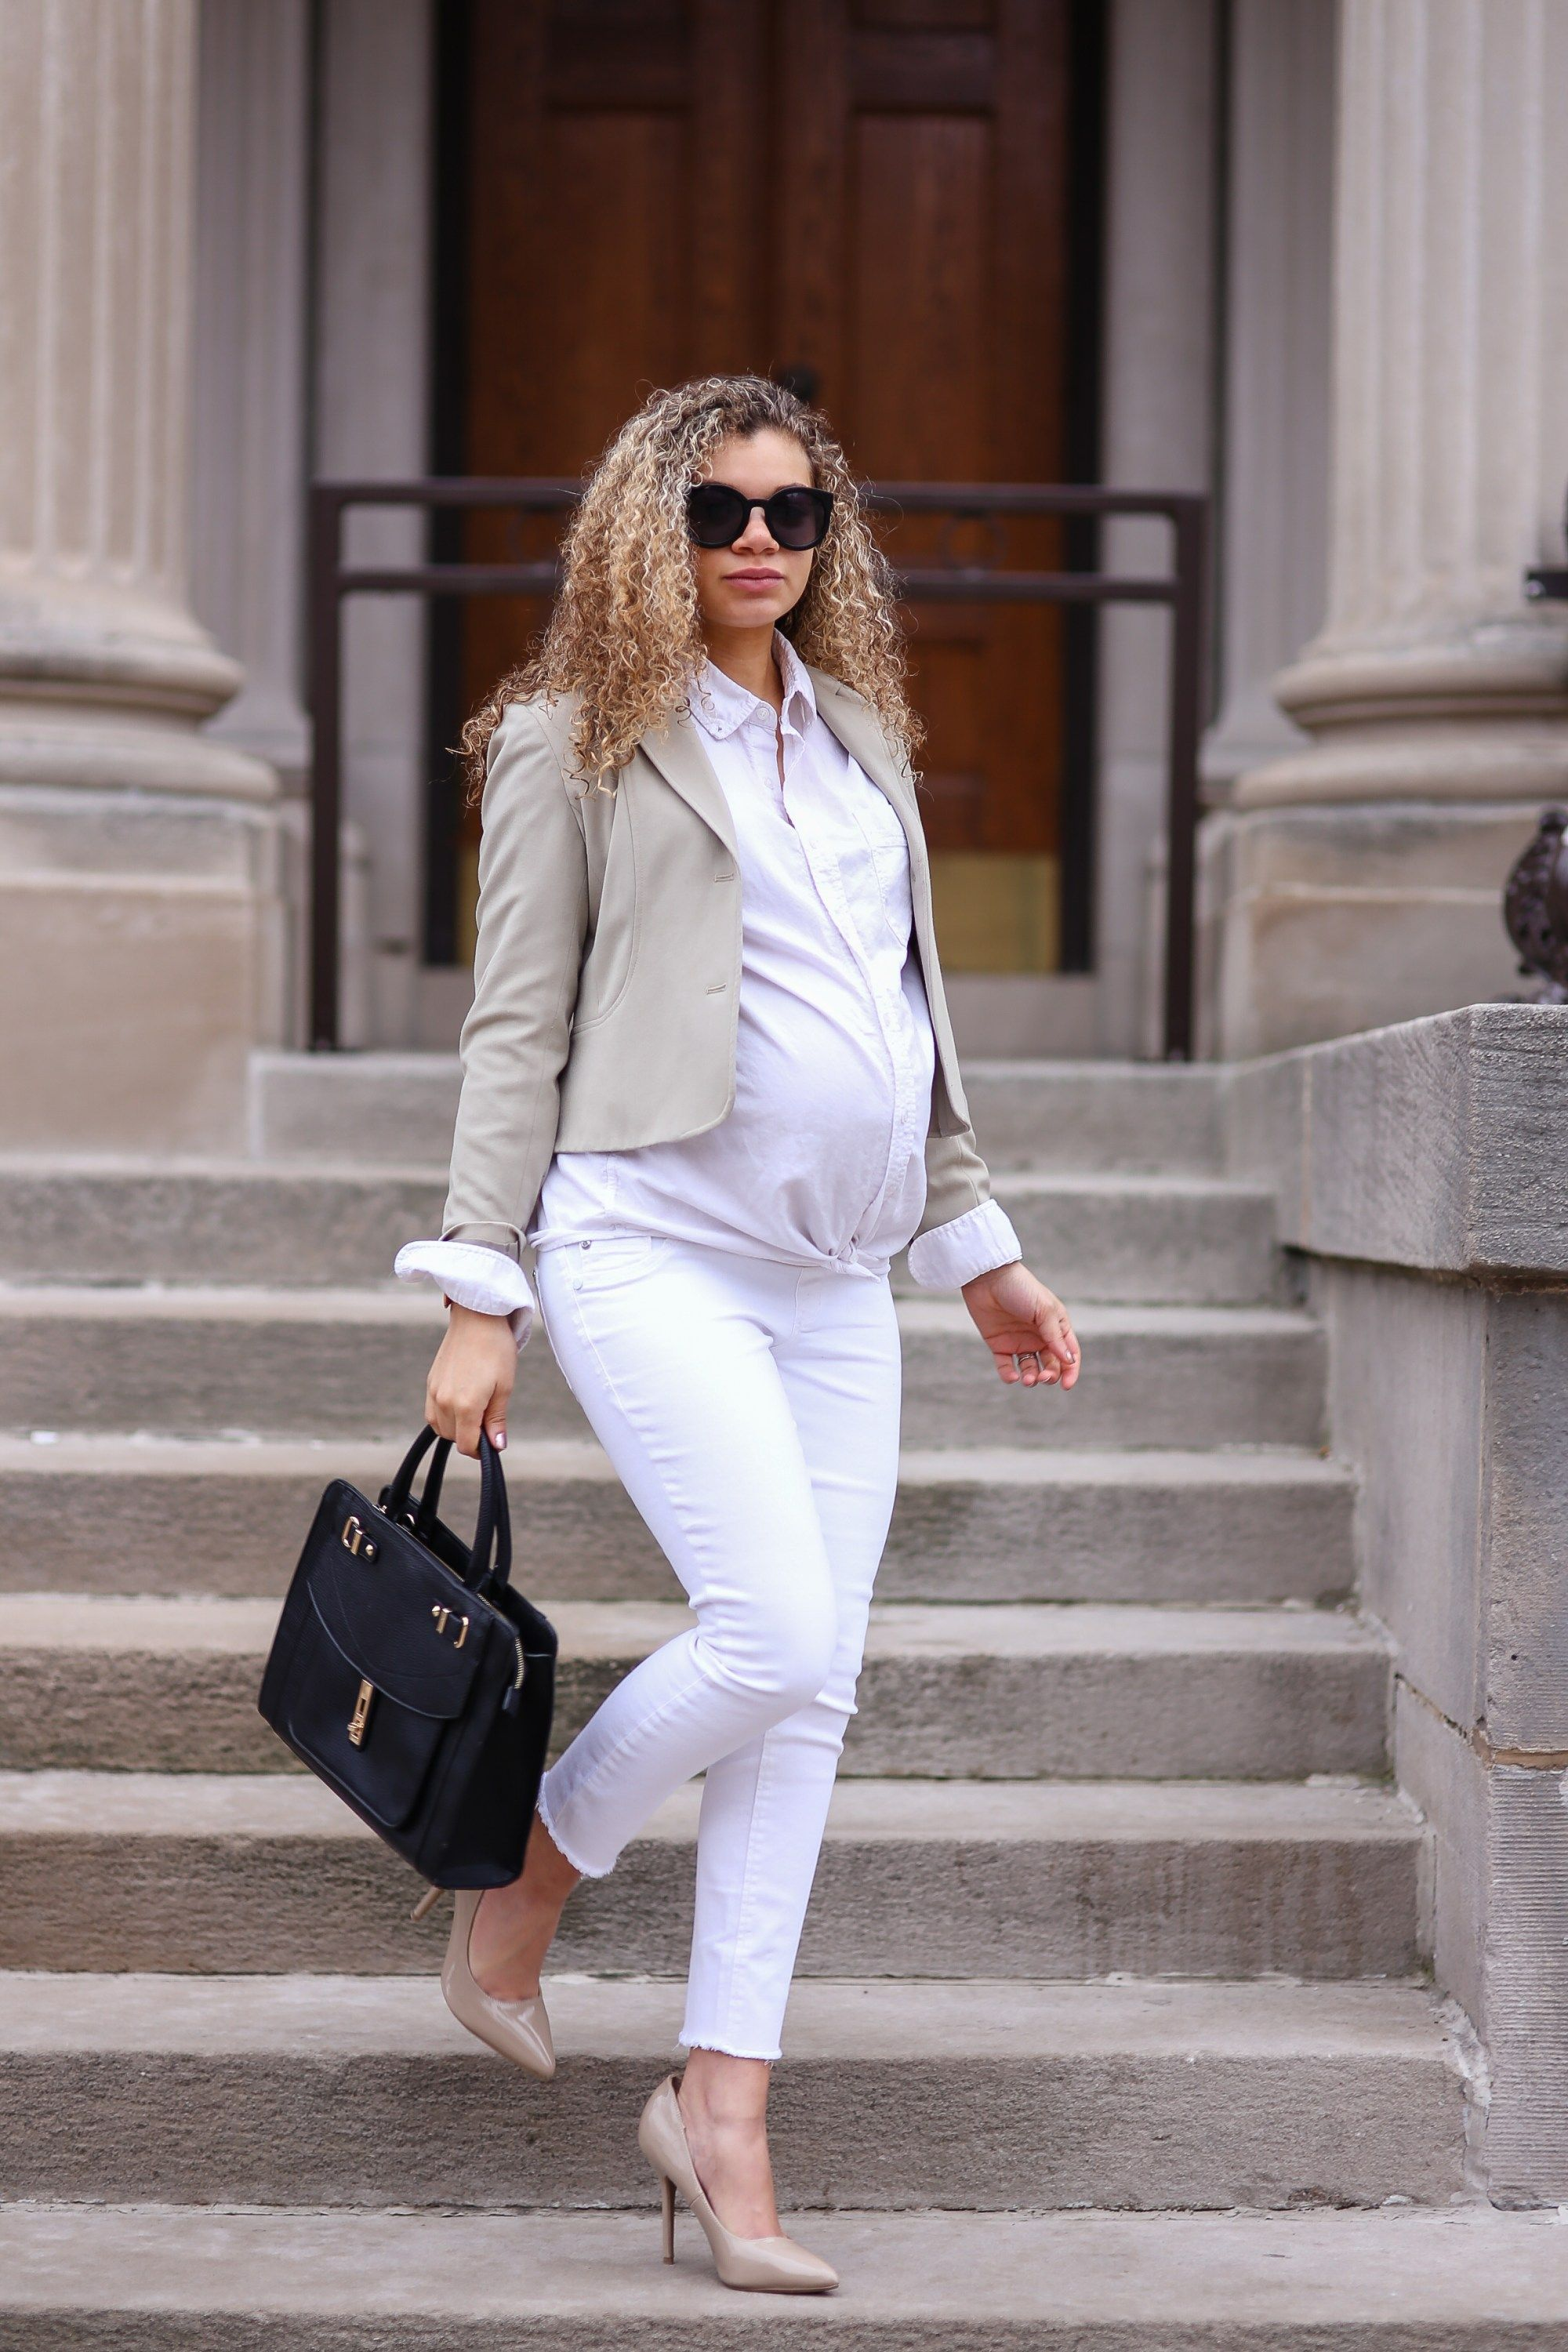 2 Chic Ways To Wear White Jeans To Work My Chic Obsession Maternity Work Clothes Casual Maternity Outfits Maternity Business Attire